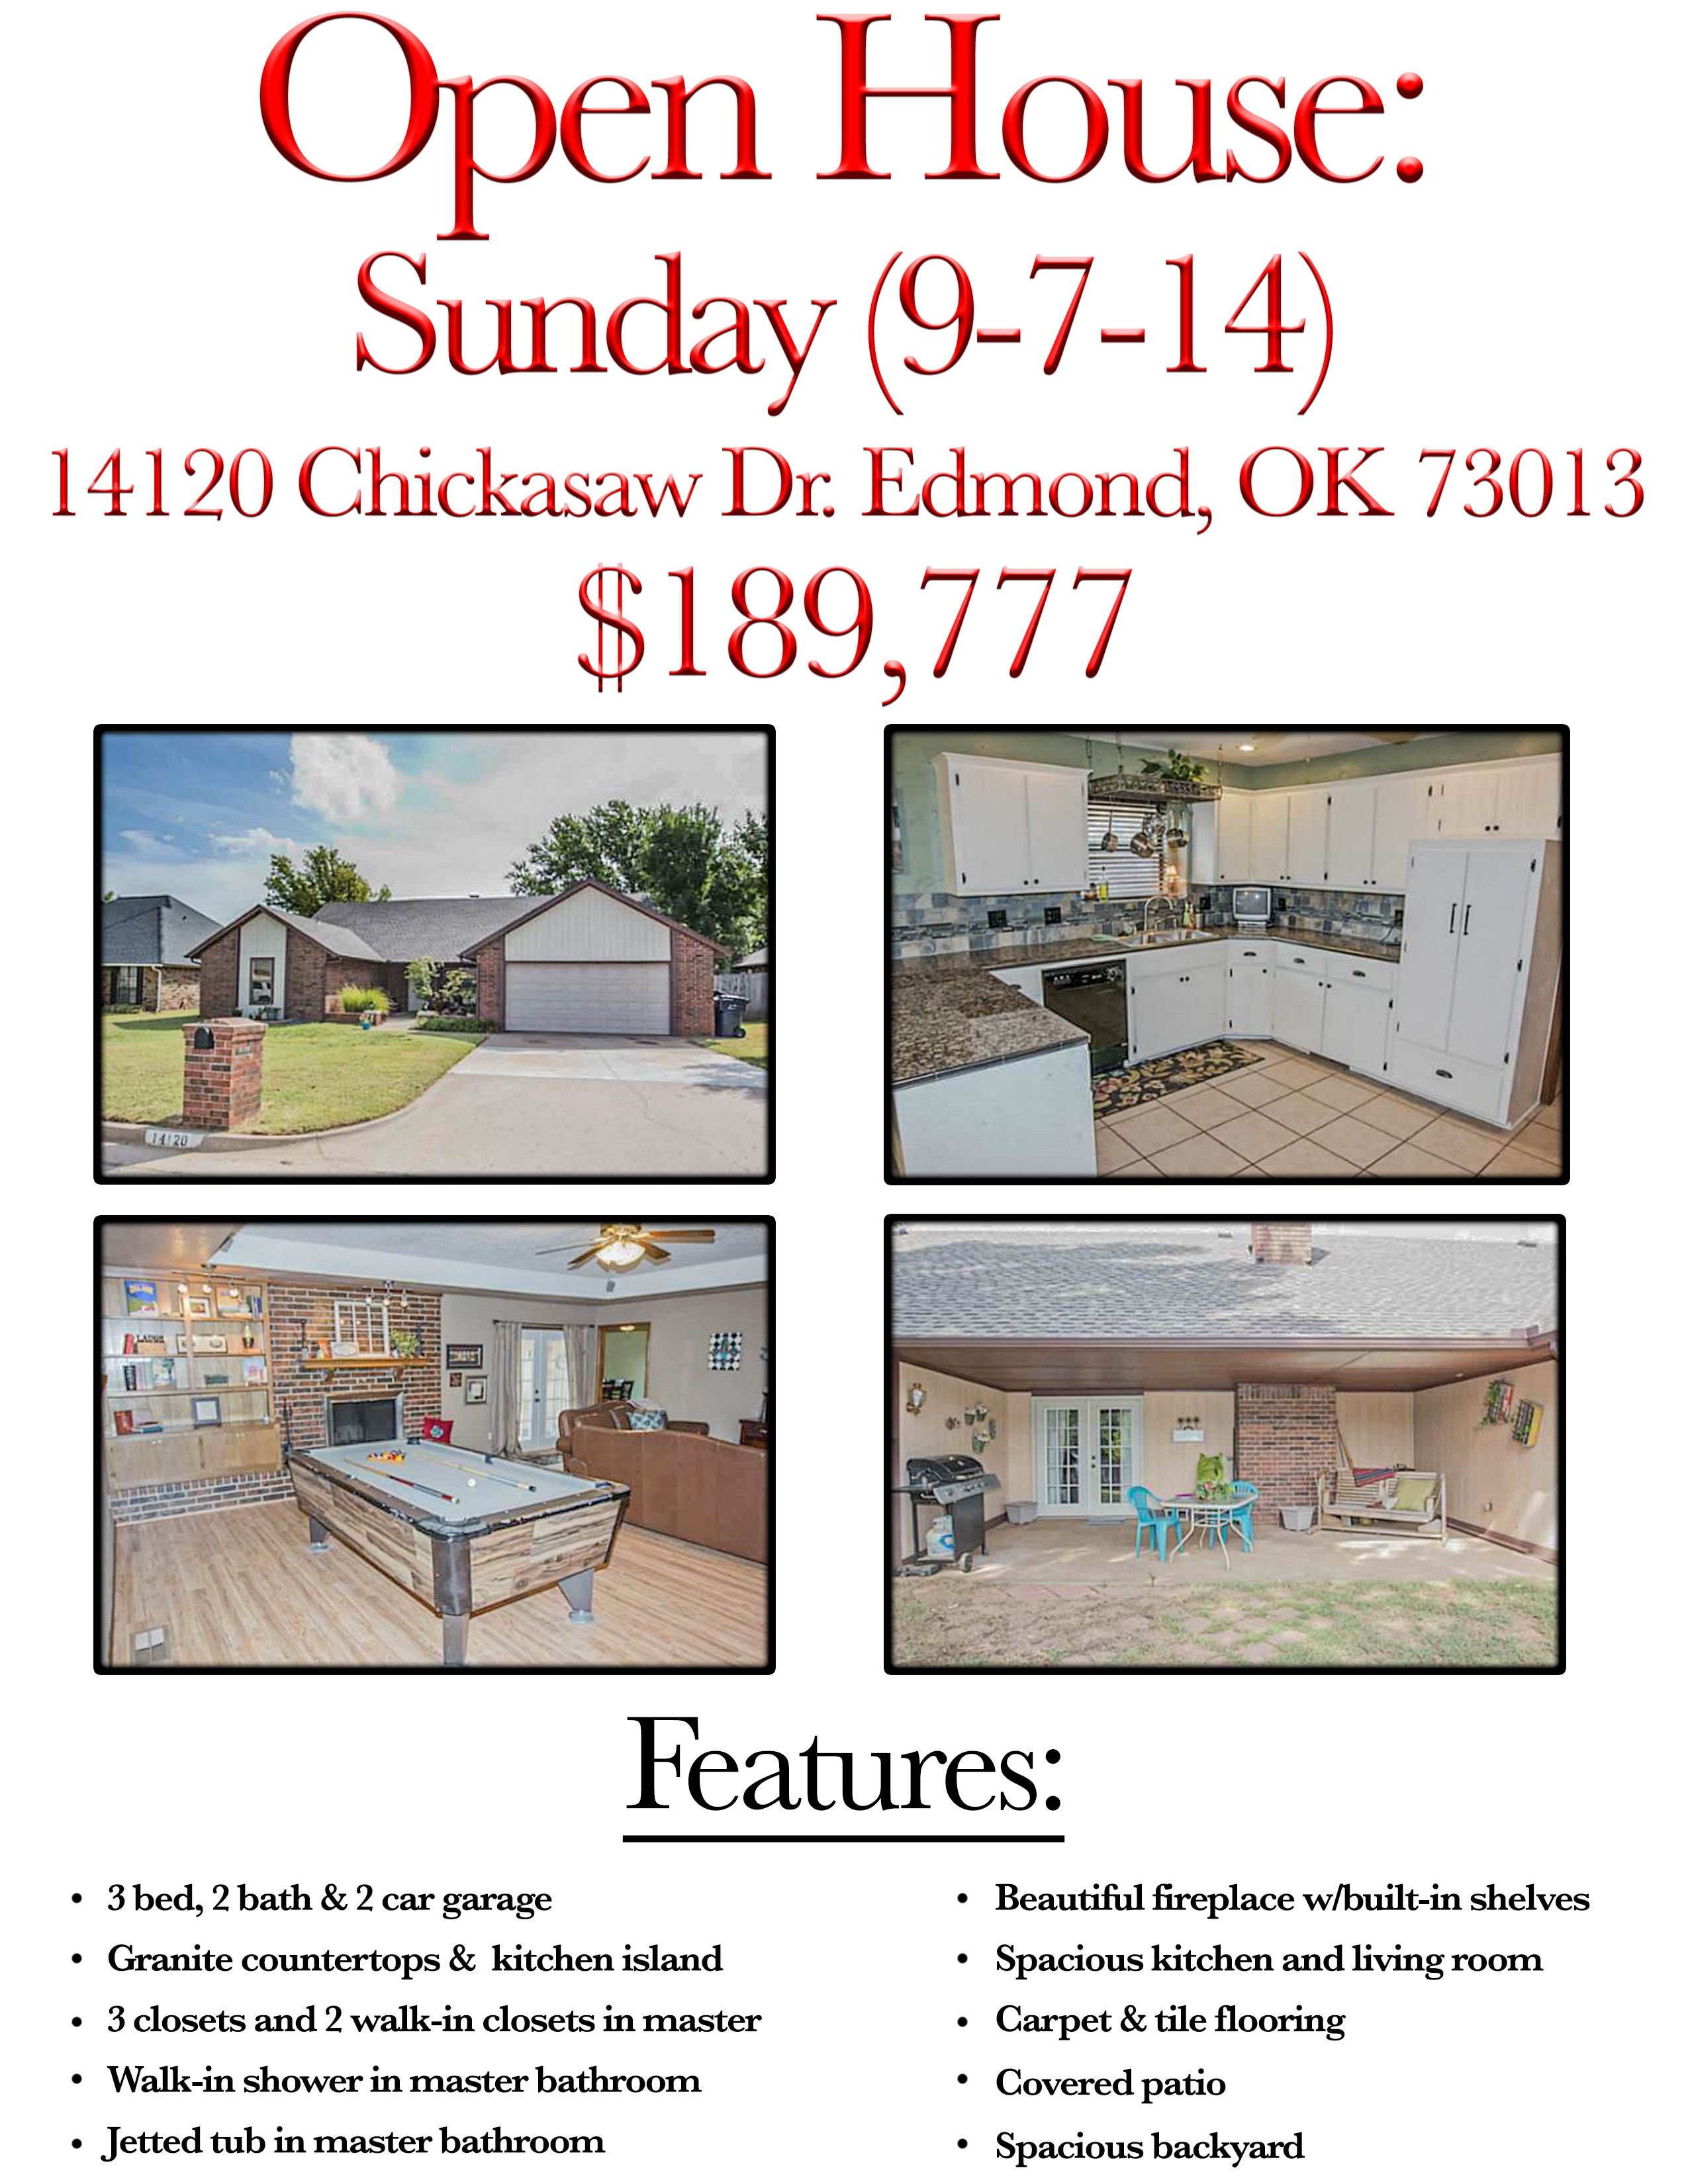 If you are looking for a home in Edmond, you're in luck! Give me a call & stop by on Sunday to see this beauty! #RealEstate #EdmondHomes #HomesinEdmond #BeautifulHomes #OKCHomes #OKC #KellerWilliams #AndrewThomas #MyOKC #Realtor